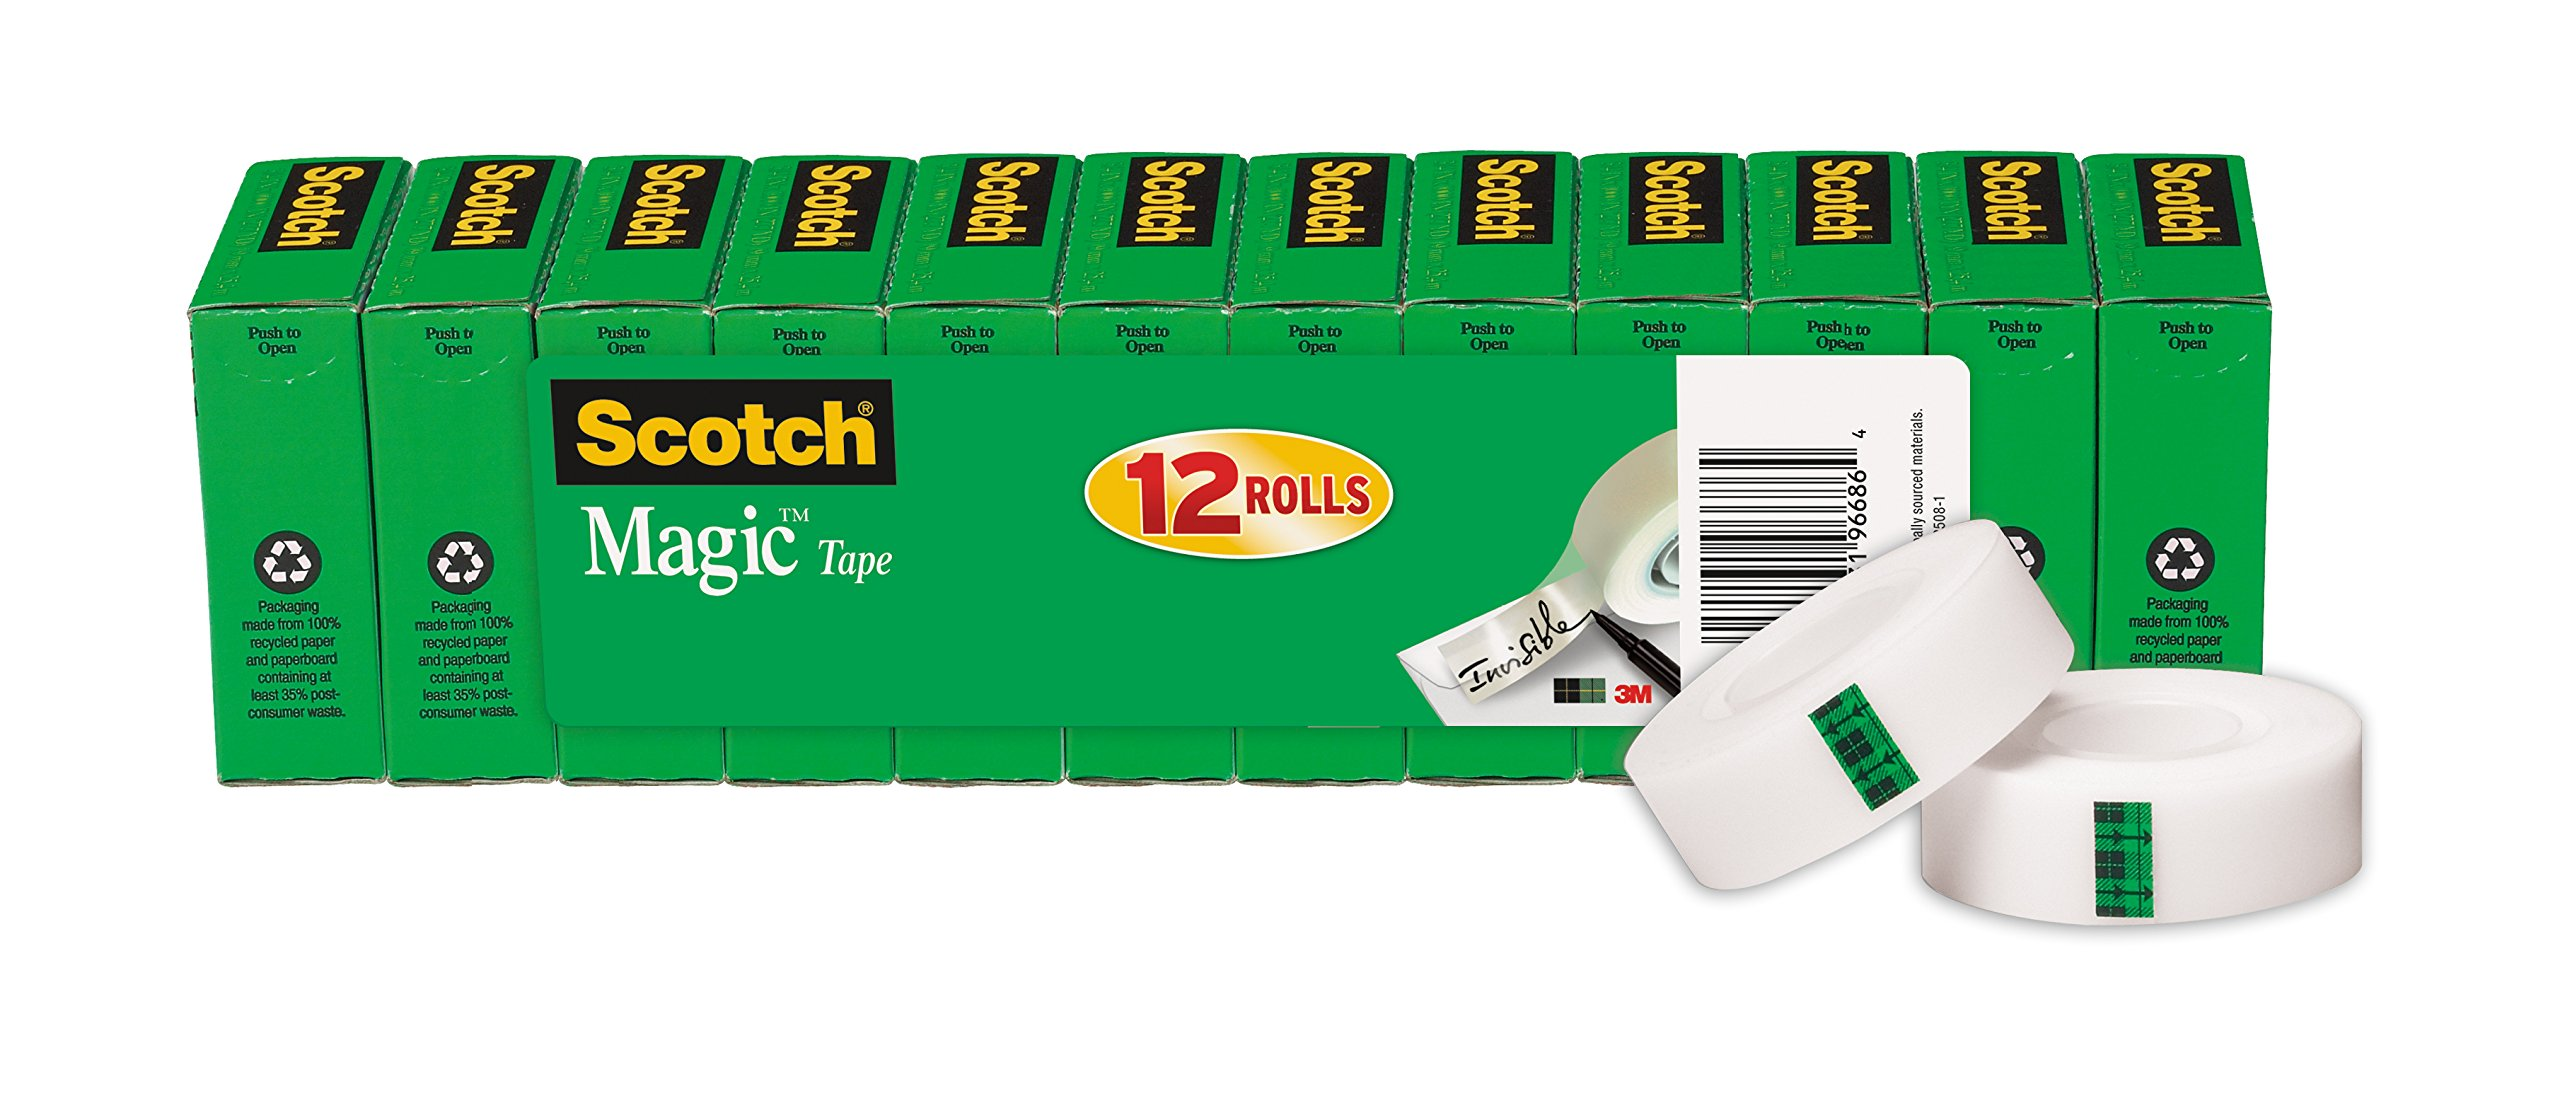 Scotch Magic Tape, Engineered for Office and Home Use, Versatile, 3/4 x 1000 Inches, Boxed, 12 Rolls (810K12) by Scotch (Image #1)